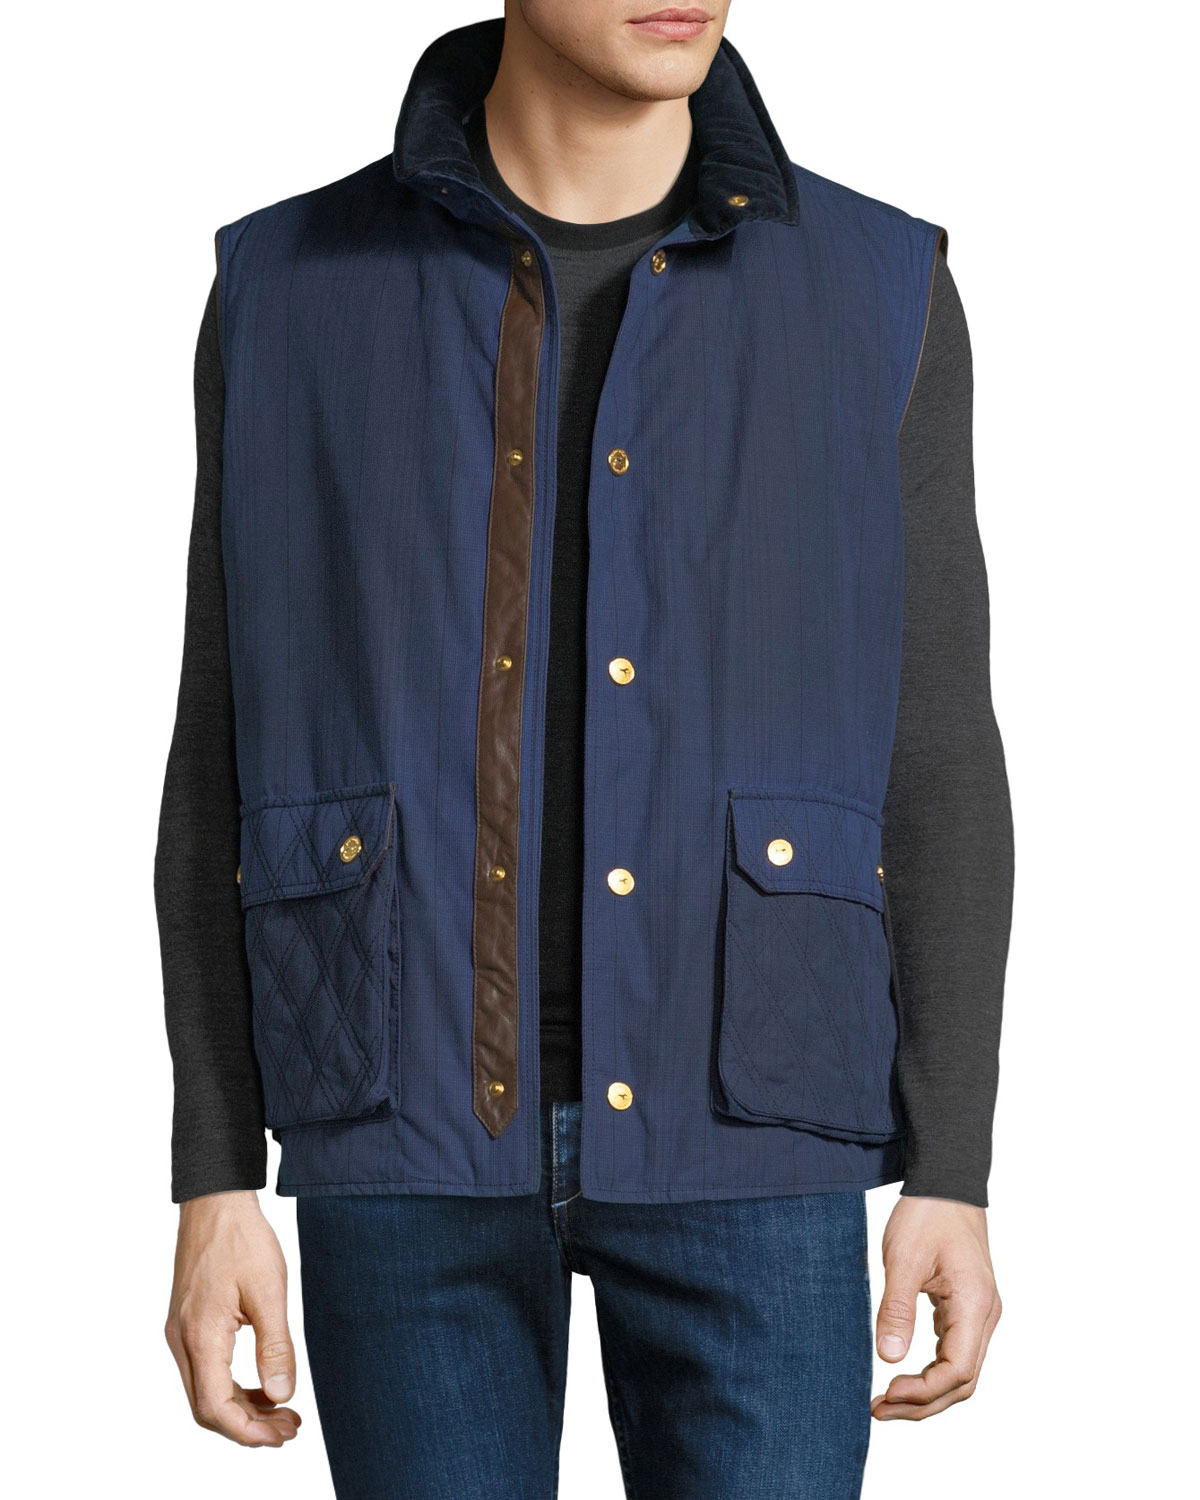 Stefano Ricci Men's Waxed Cotton Sport Gilet Vest